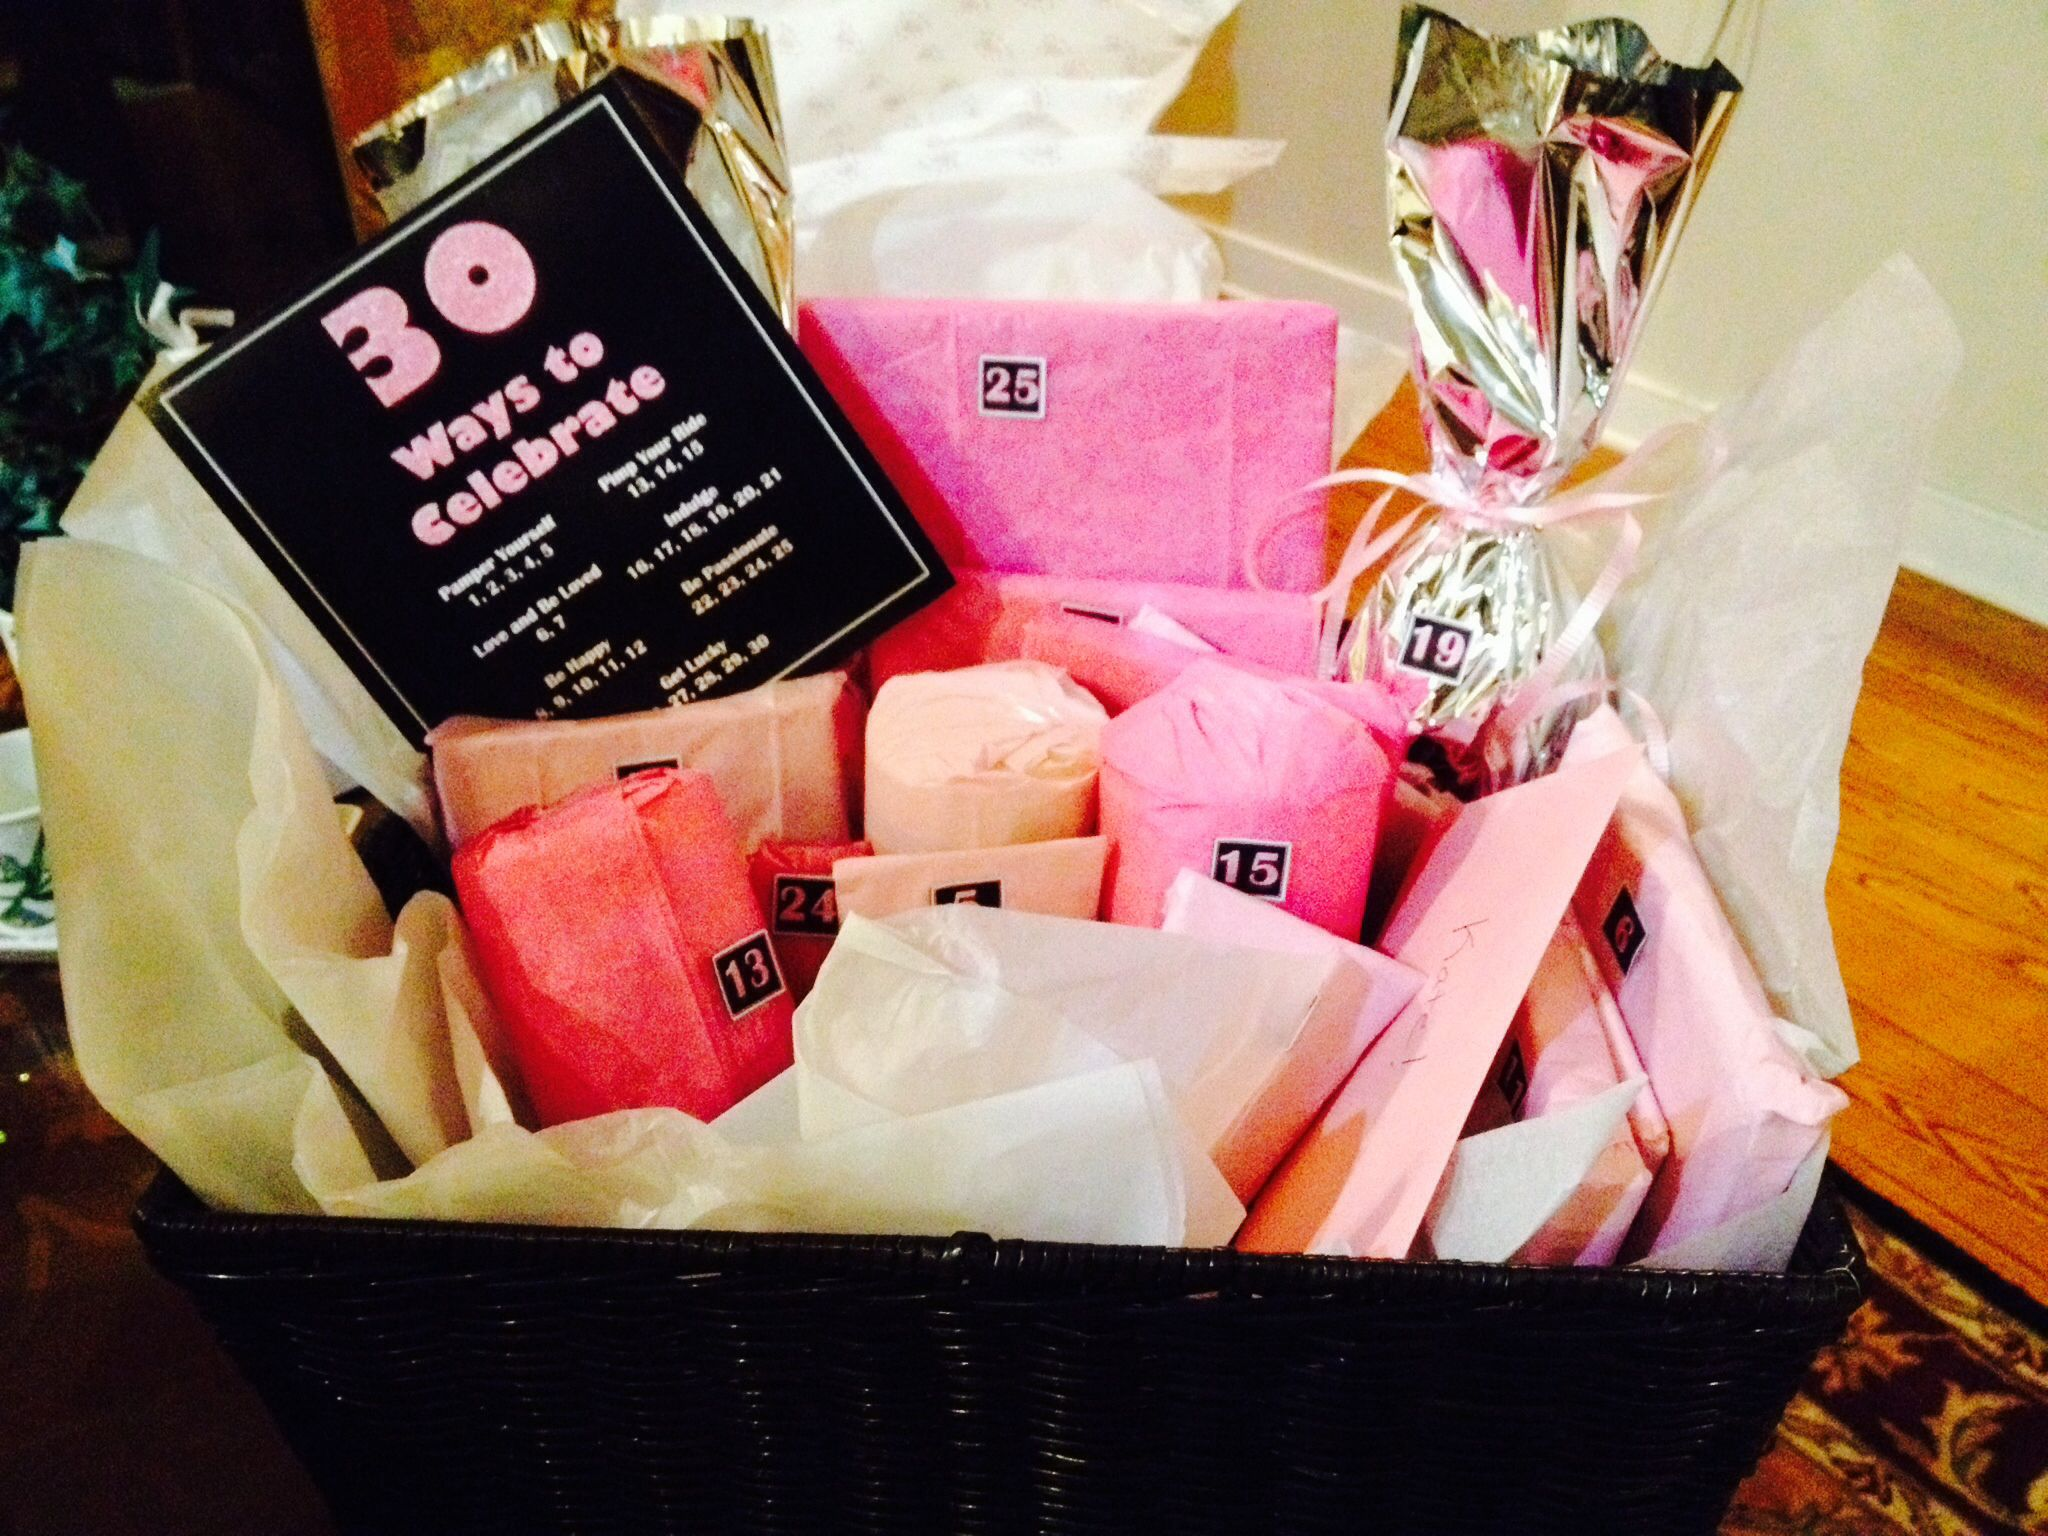 30 Gifts To Celebrate 30th Birthday And Categories Can Be Edited For The Person Pamper Yourself 1 5 Burts Bees Lip Stick Body Lotion